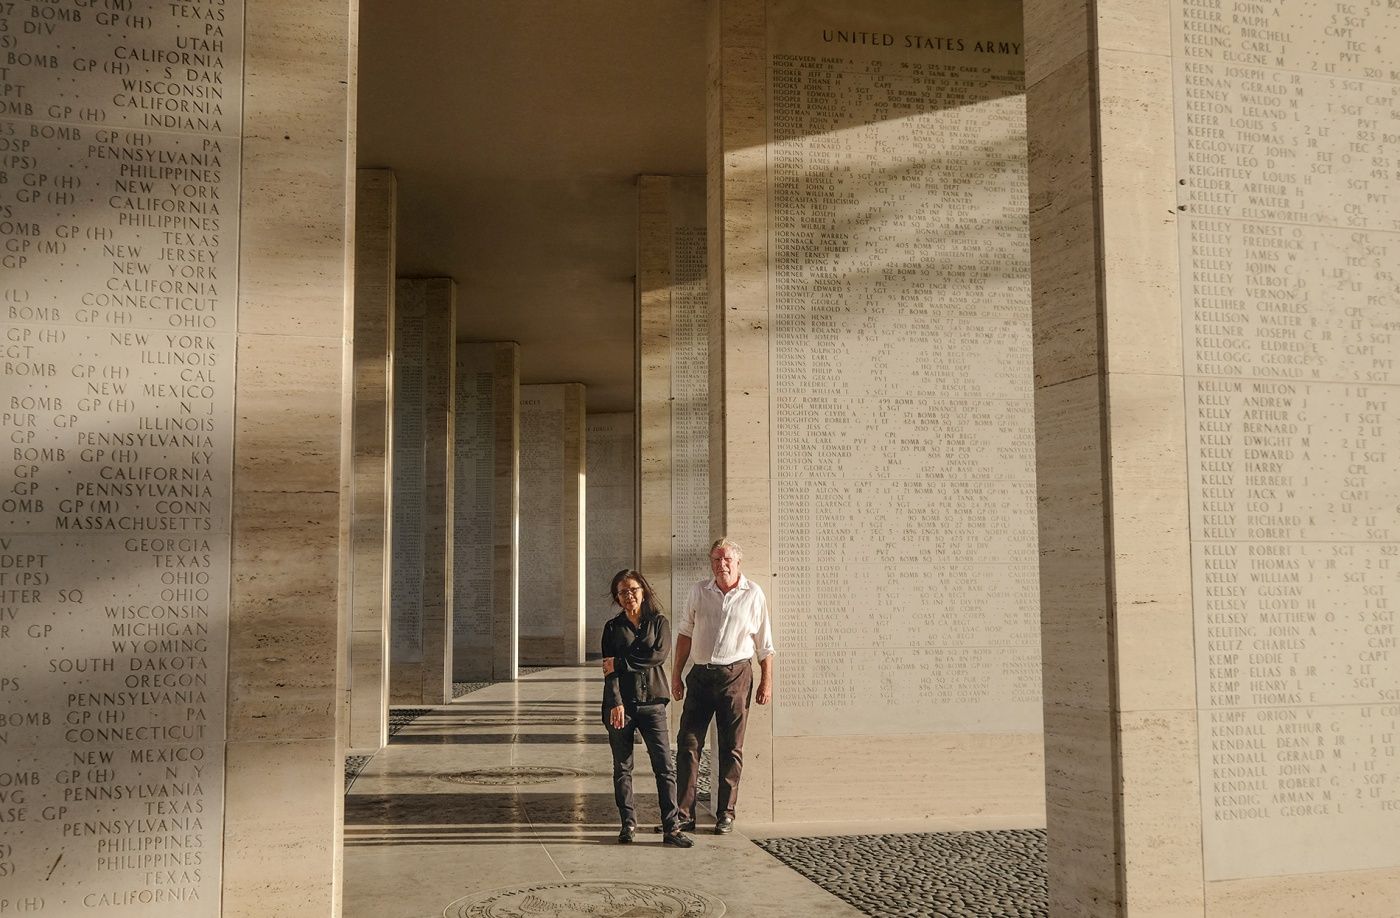 Mark Gillen '77 and his wife, Delmafe Festin, standing at the Manila American Cemetery between stone columns